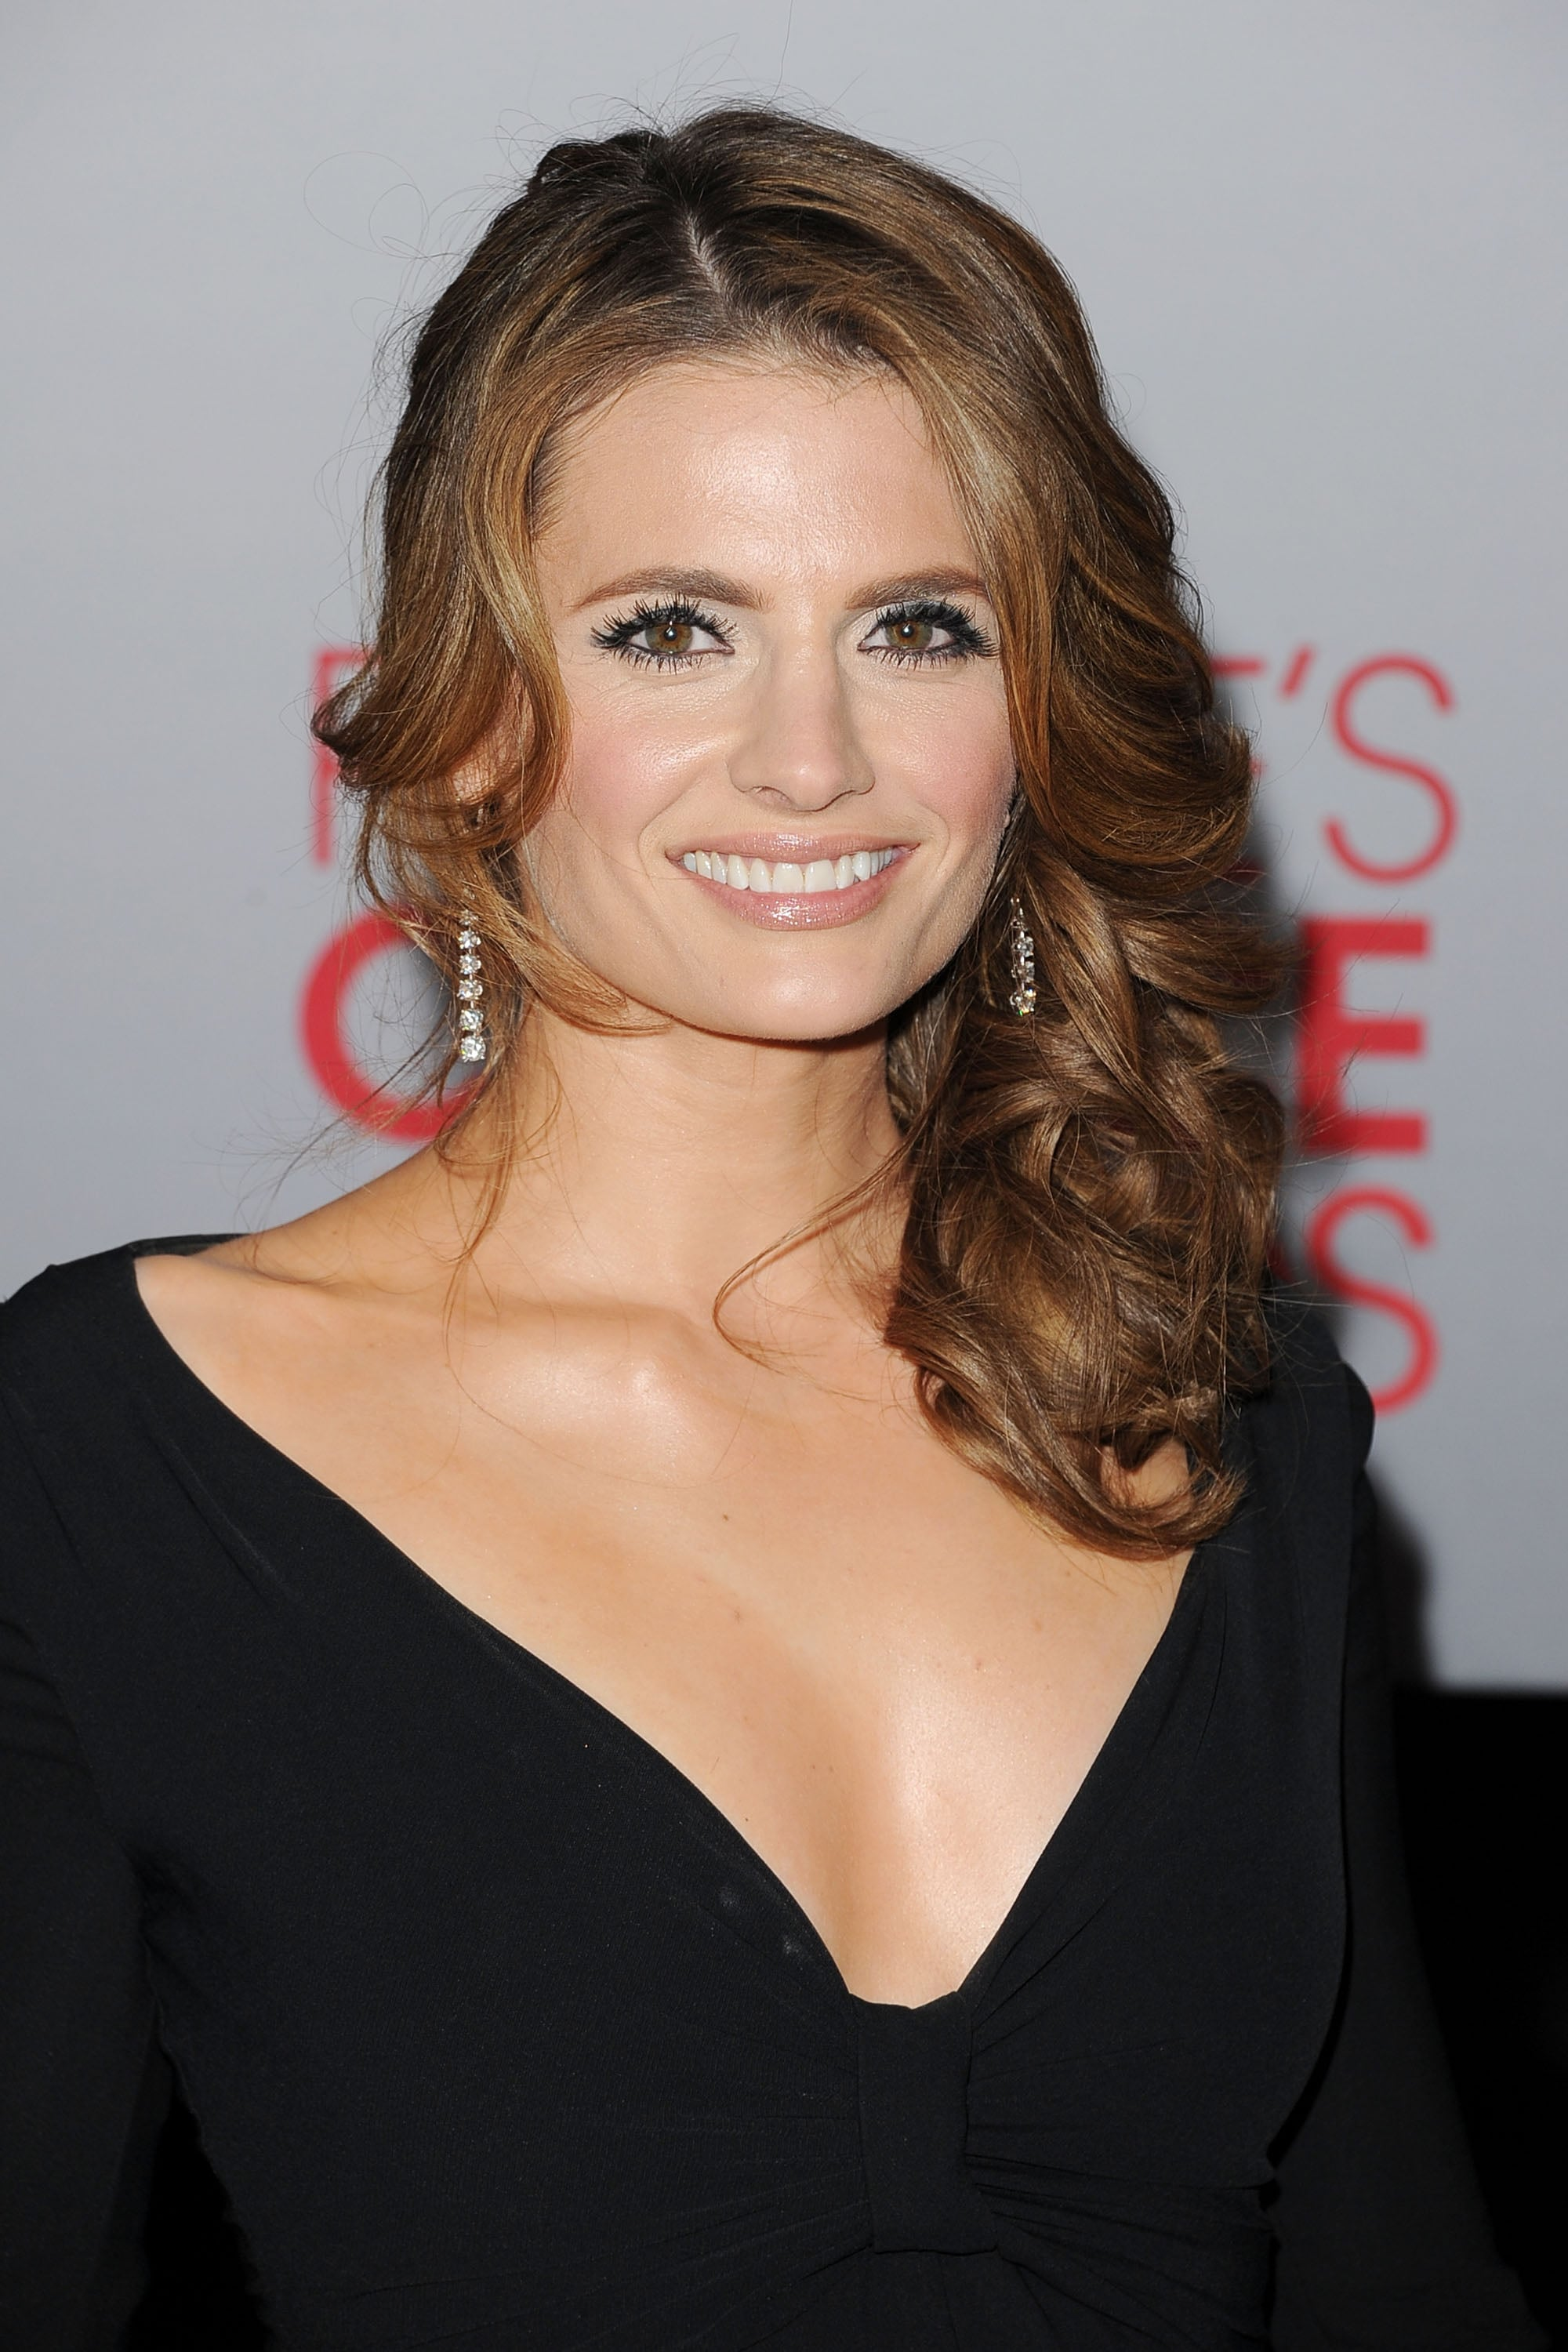 Stana Katic smiled on the red carpet.